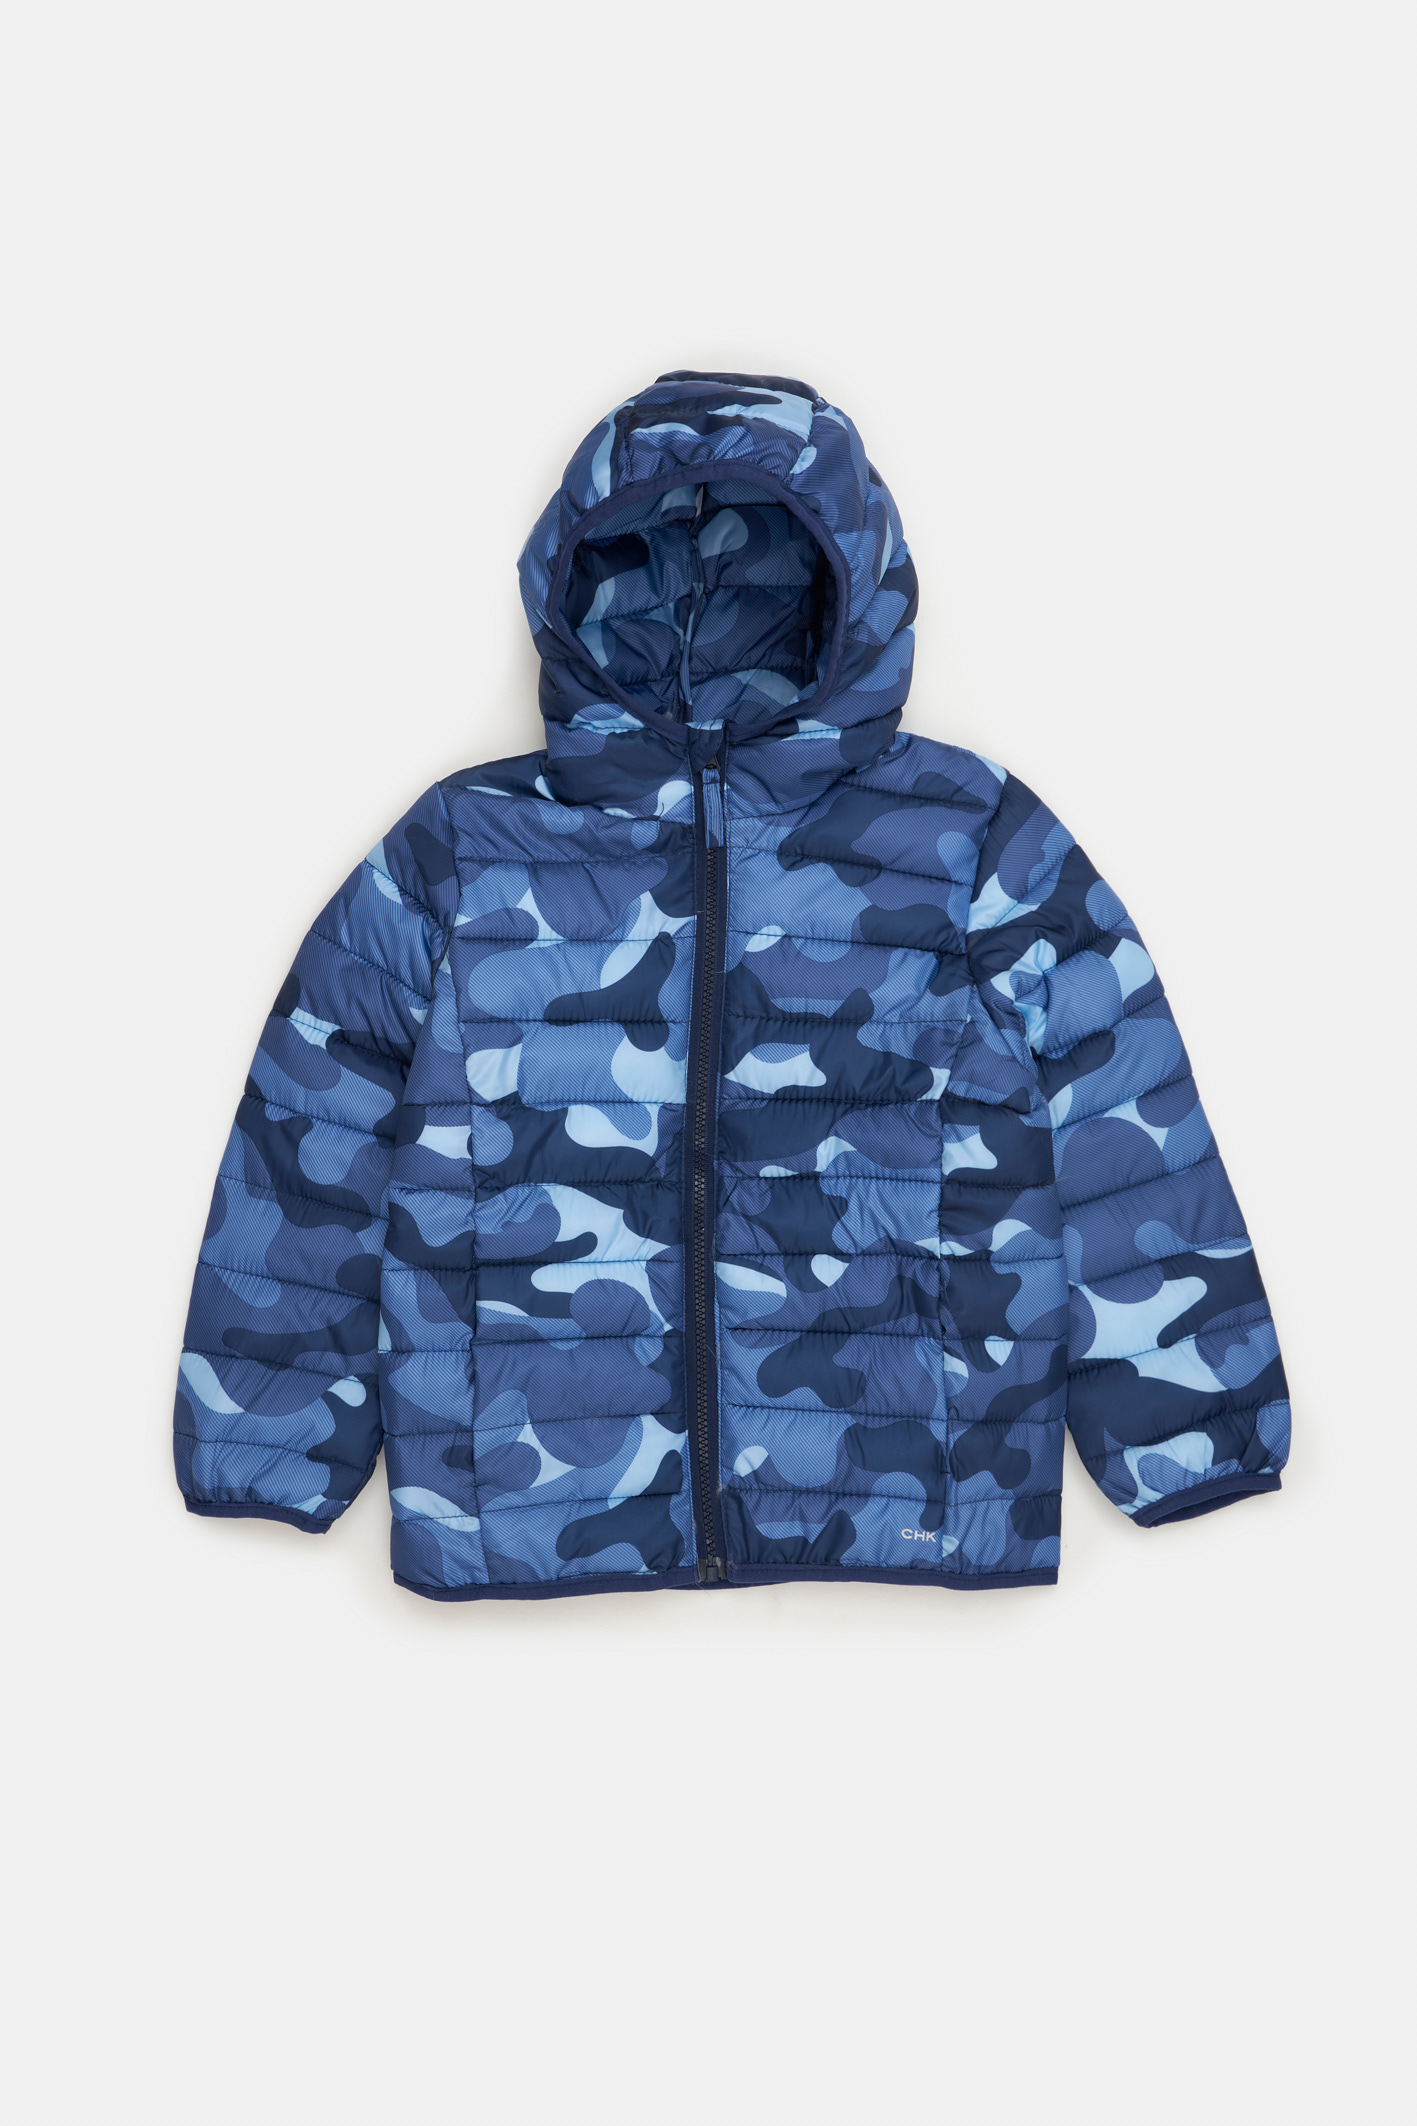 cheeky_campera-sky-soldier--boy-1-3_53-31-2021__picture-83265